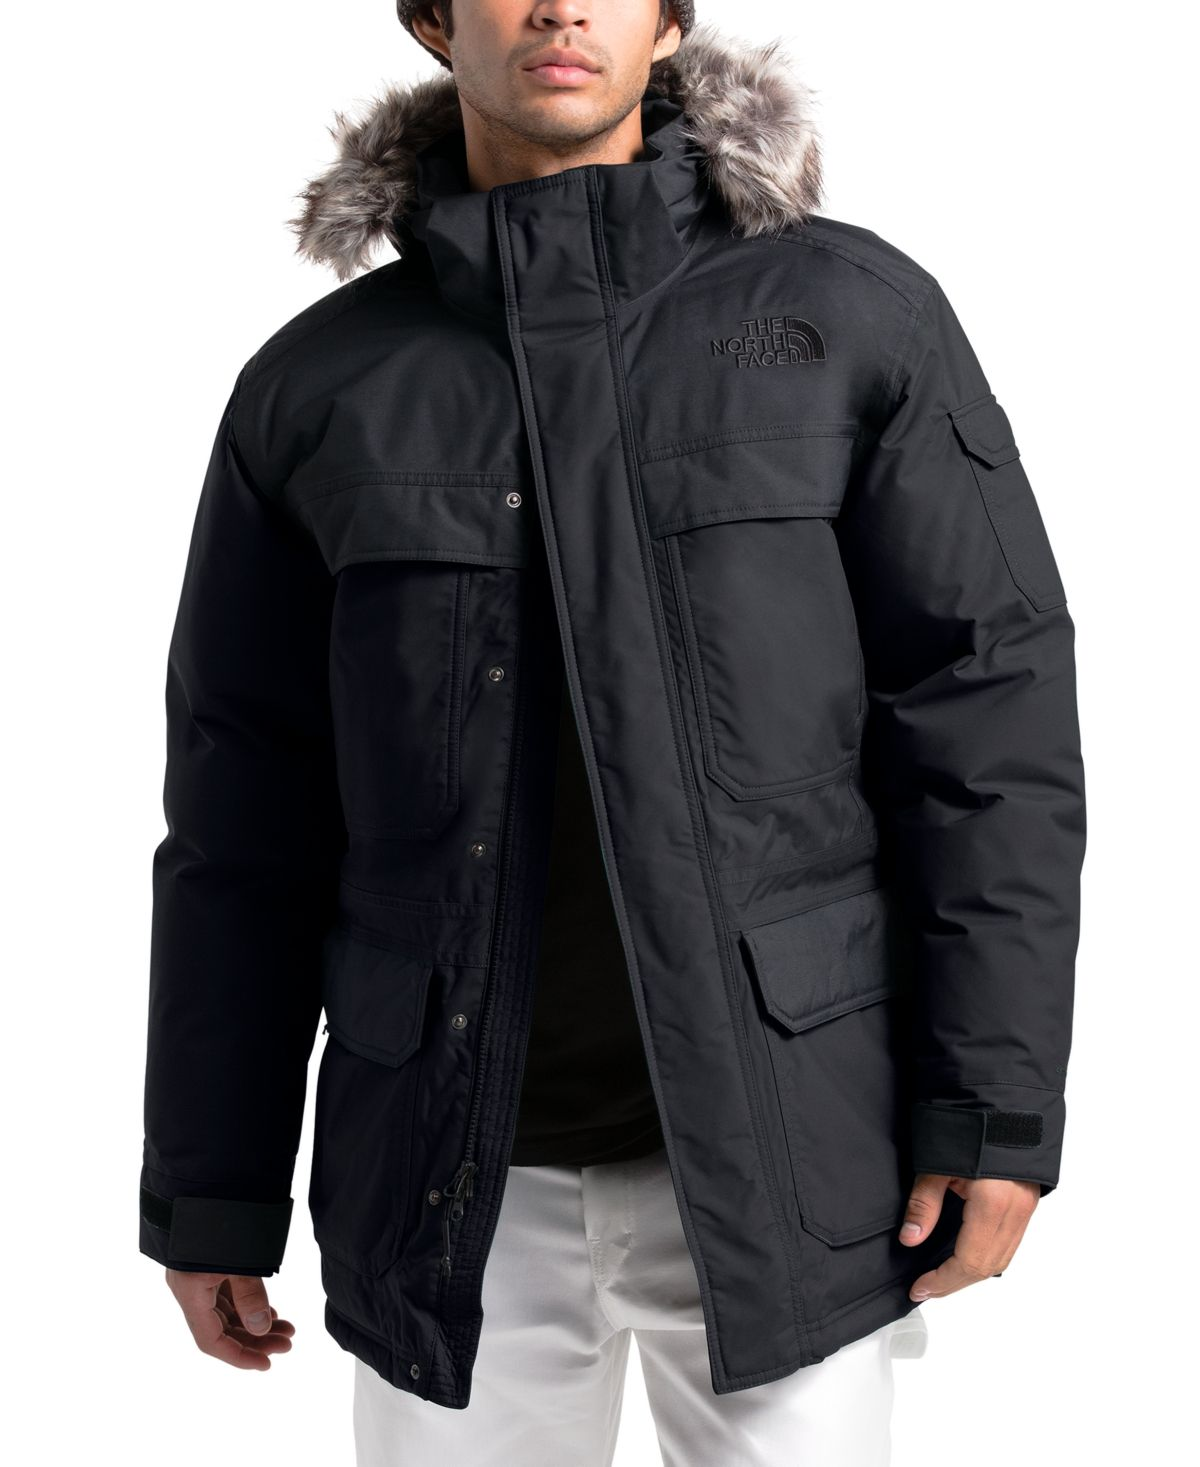 Pin By Adalberto Castro On Fashion Winter Jacket North Face North Face Mens Parka [ 1467 x 1200 Pixel ]